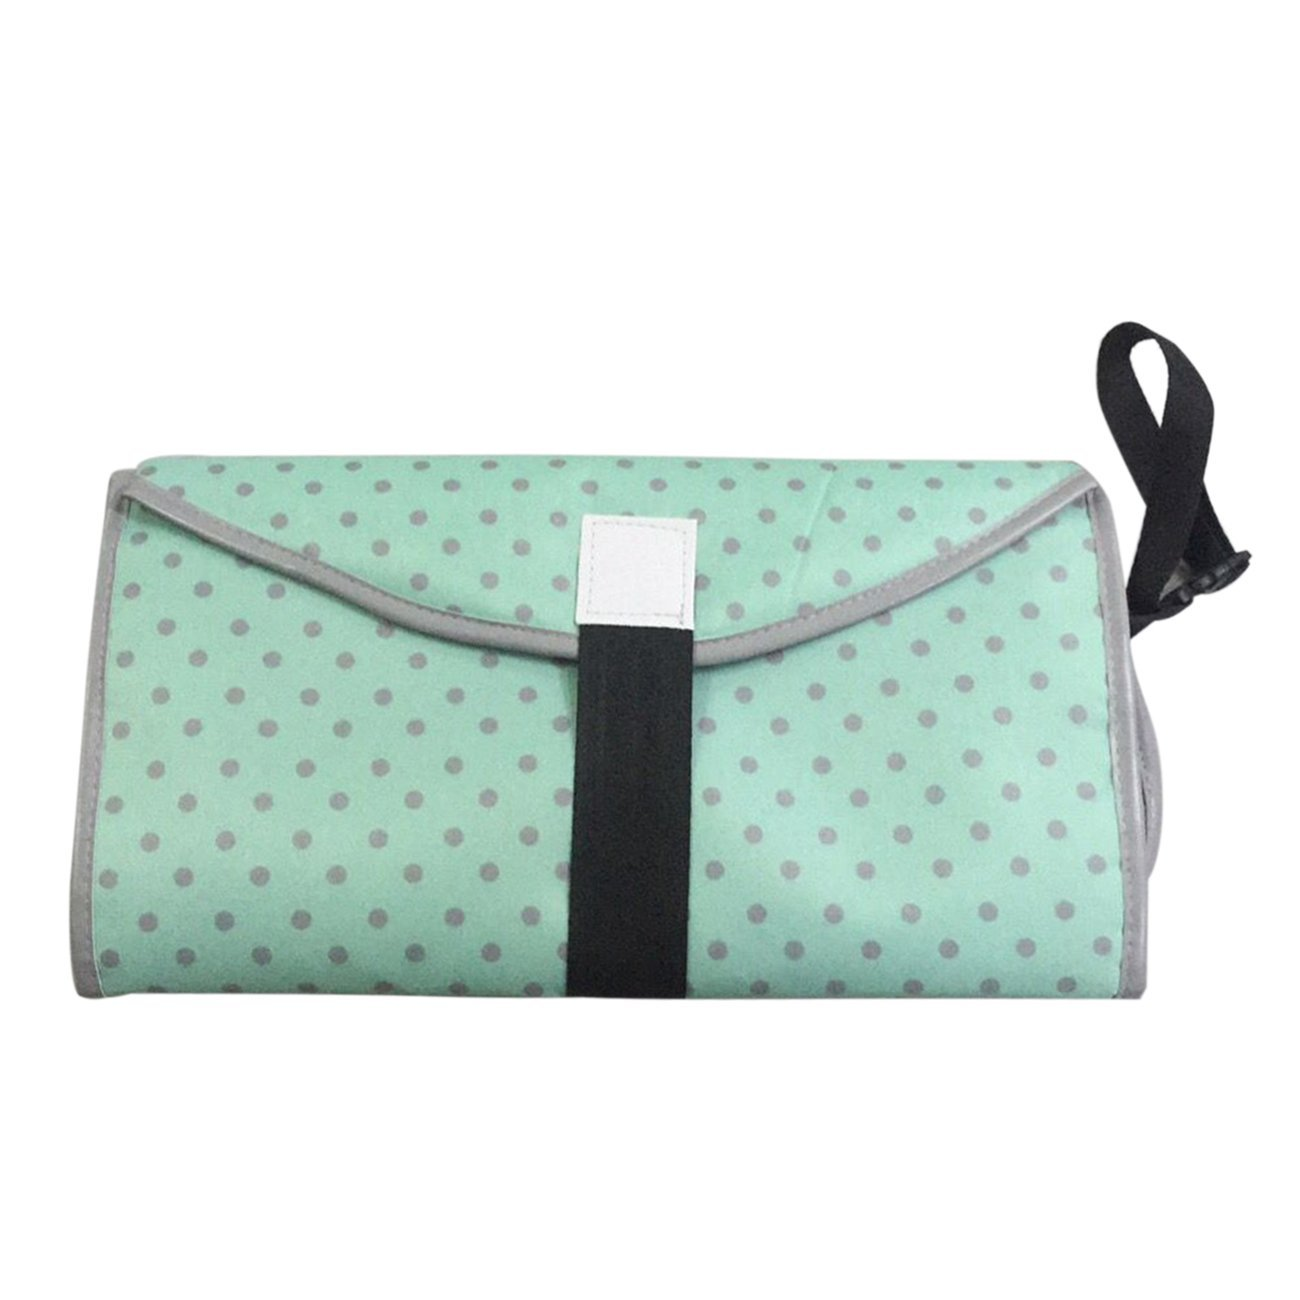 3-in-1 Diaper Clutch Waterproof Folding Baby Pad Portable Clean Hands Diaper Changing Pad Convenient Changing Station Redredfire